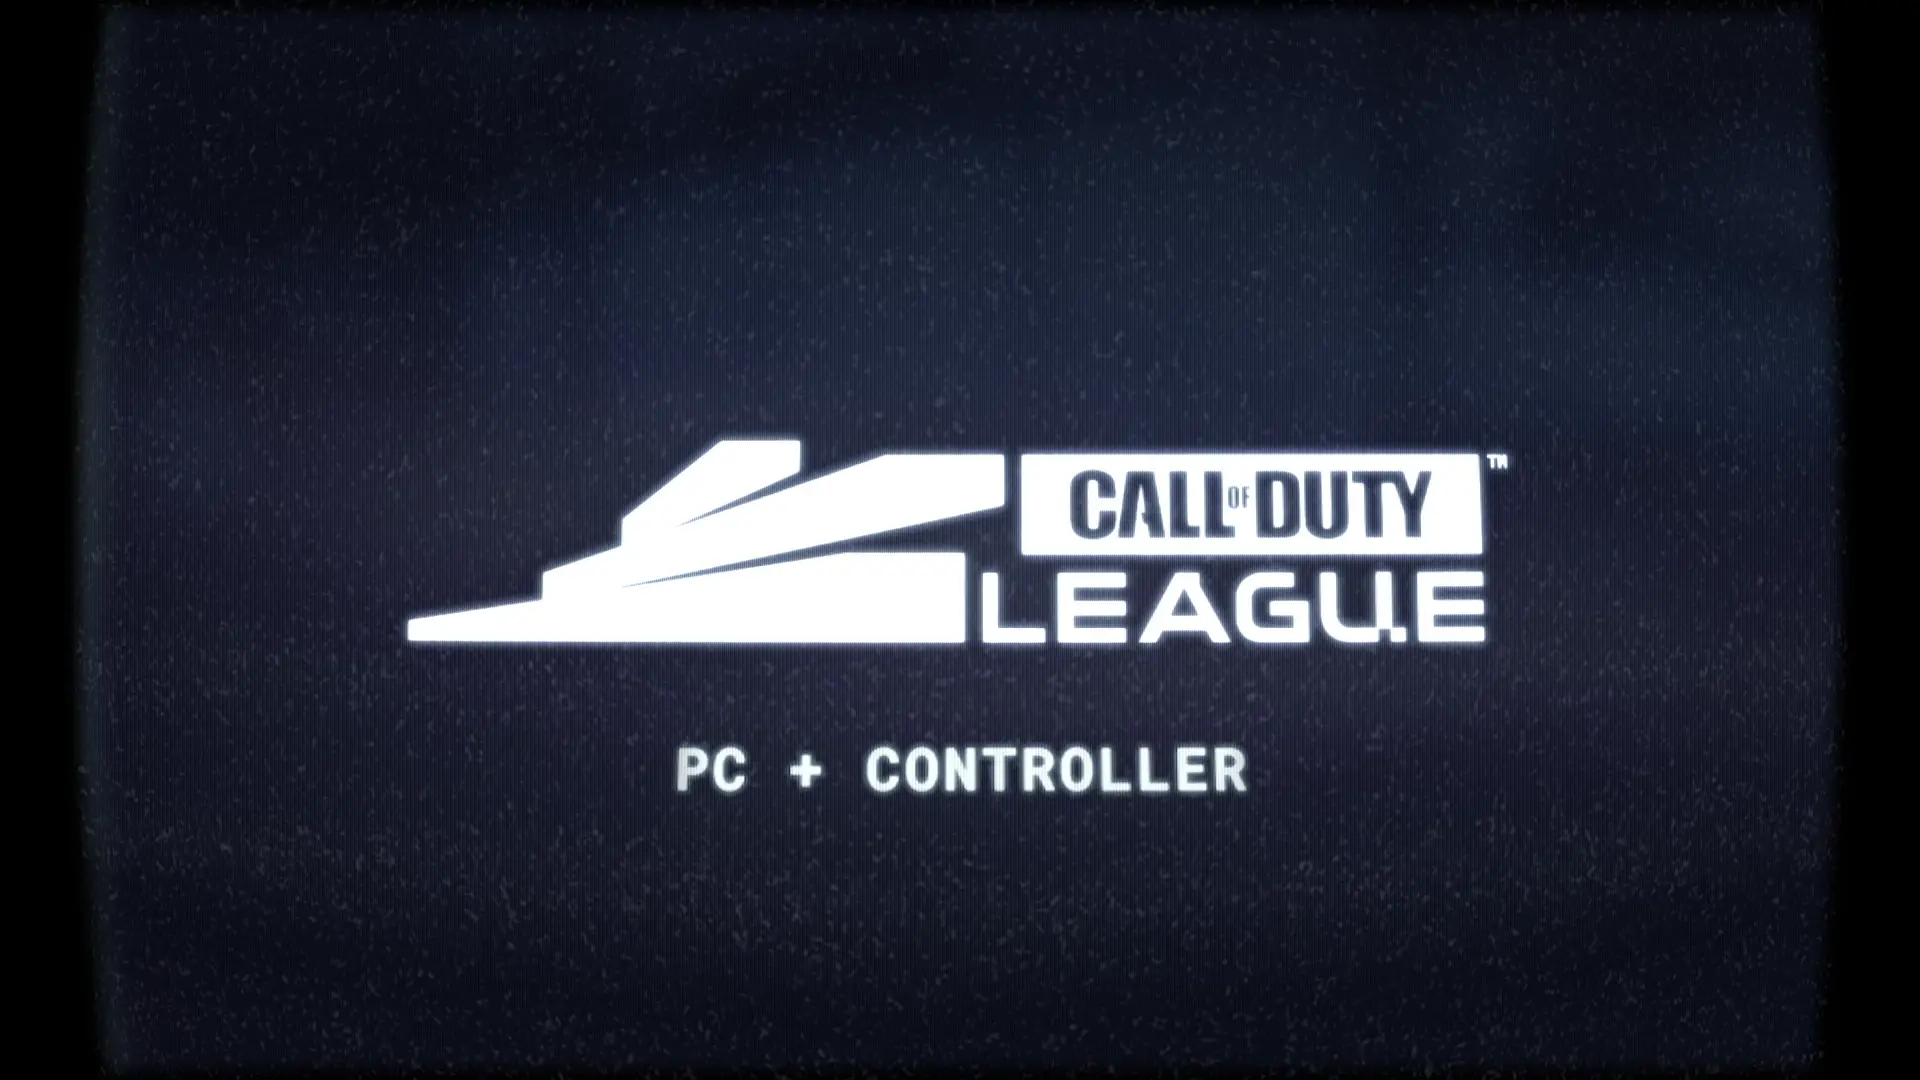 Call of Duty League 2021 ps5 pc